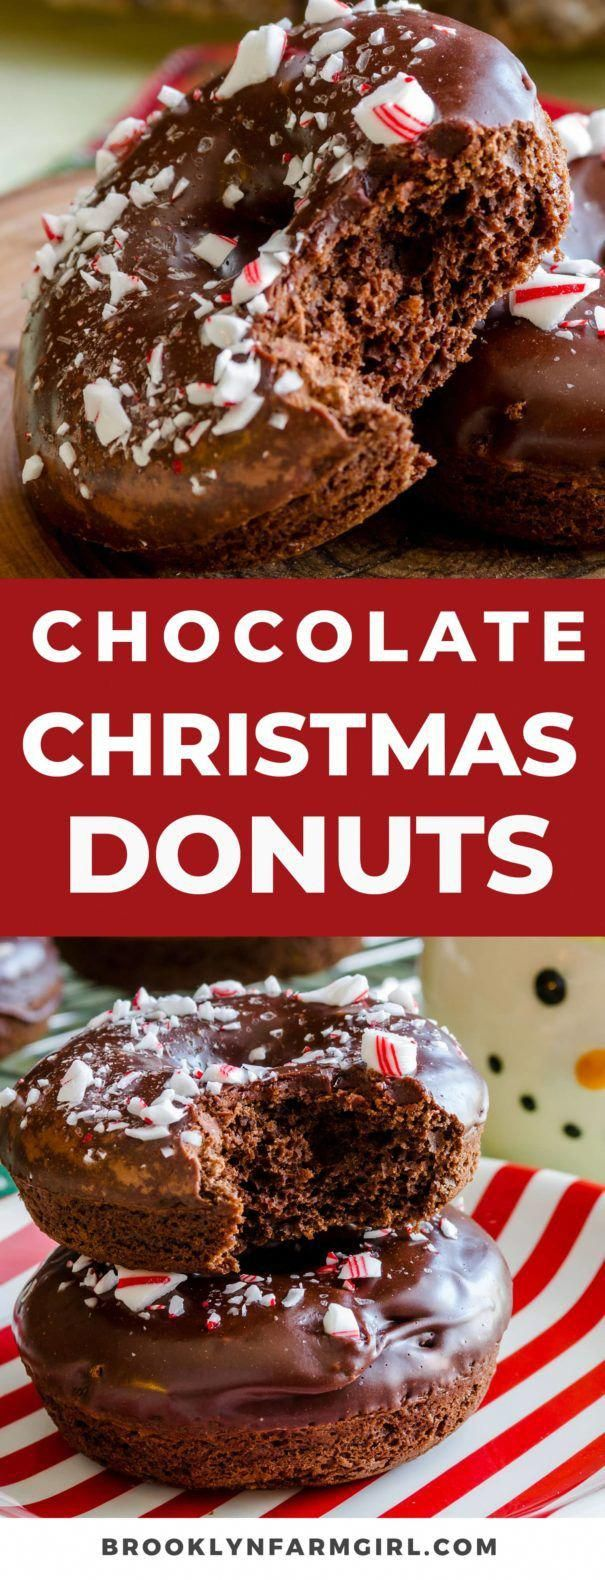 These Christmas donuts are fluffy baked chocolate donuts coated in chocolate frosting then topped with crushed peppermint candy canes. A fun and festive dessert that's perfect for Christmas breakfast! #donuts #chocolate #frosting #christmasrecipes #christmasbreakfast #breakfast